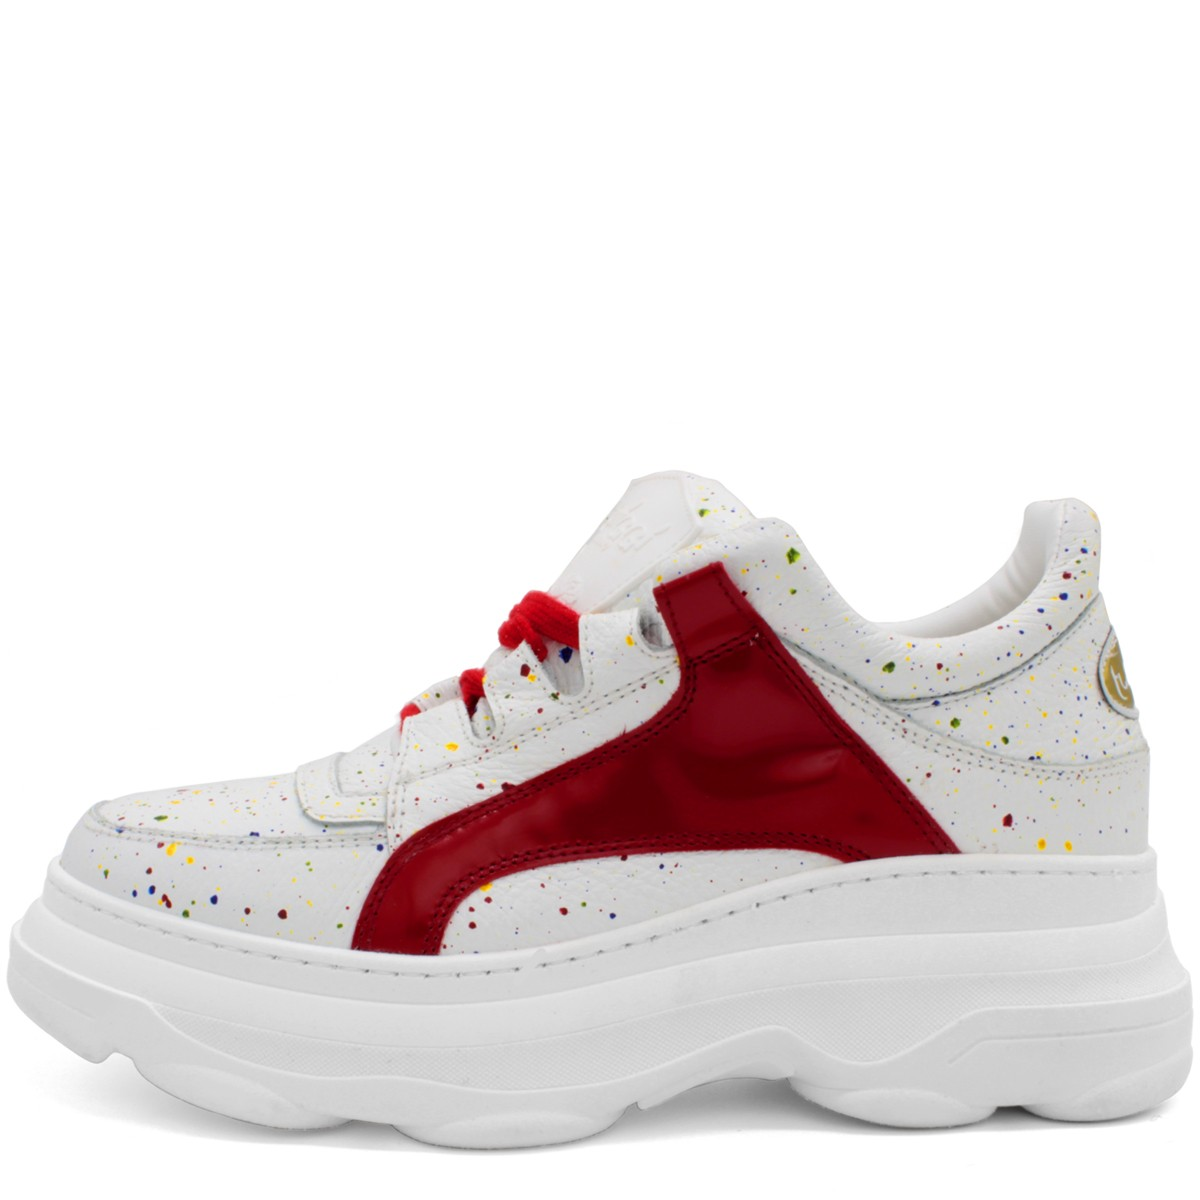 "WHITE AND RED SNEAKERS ""BALI"""